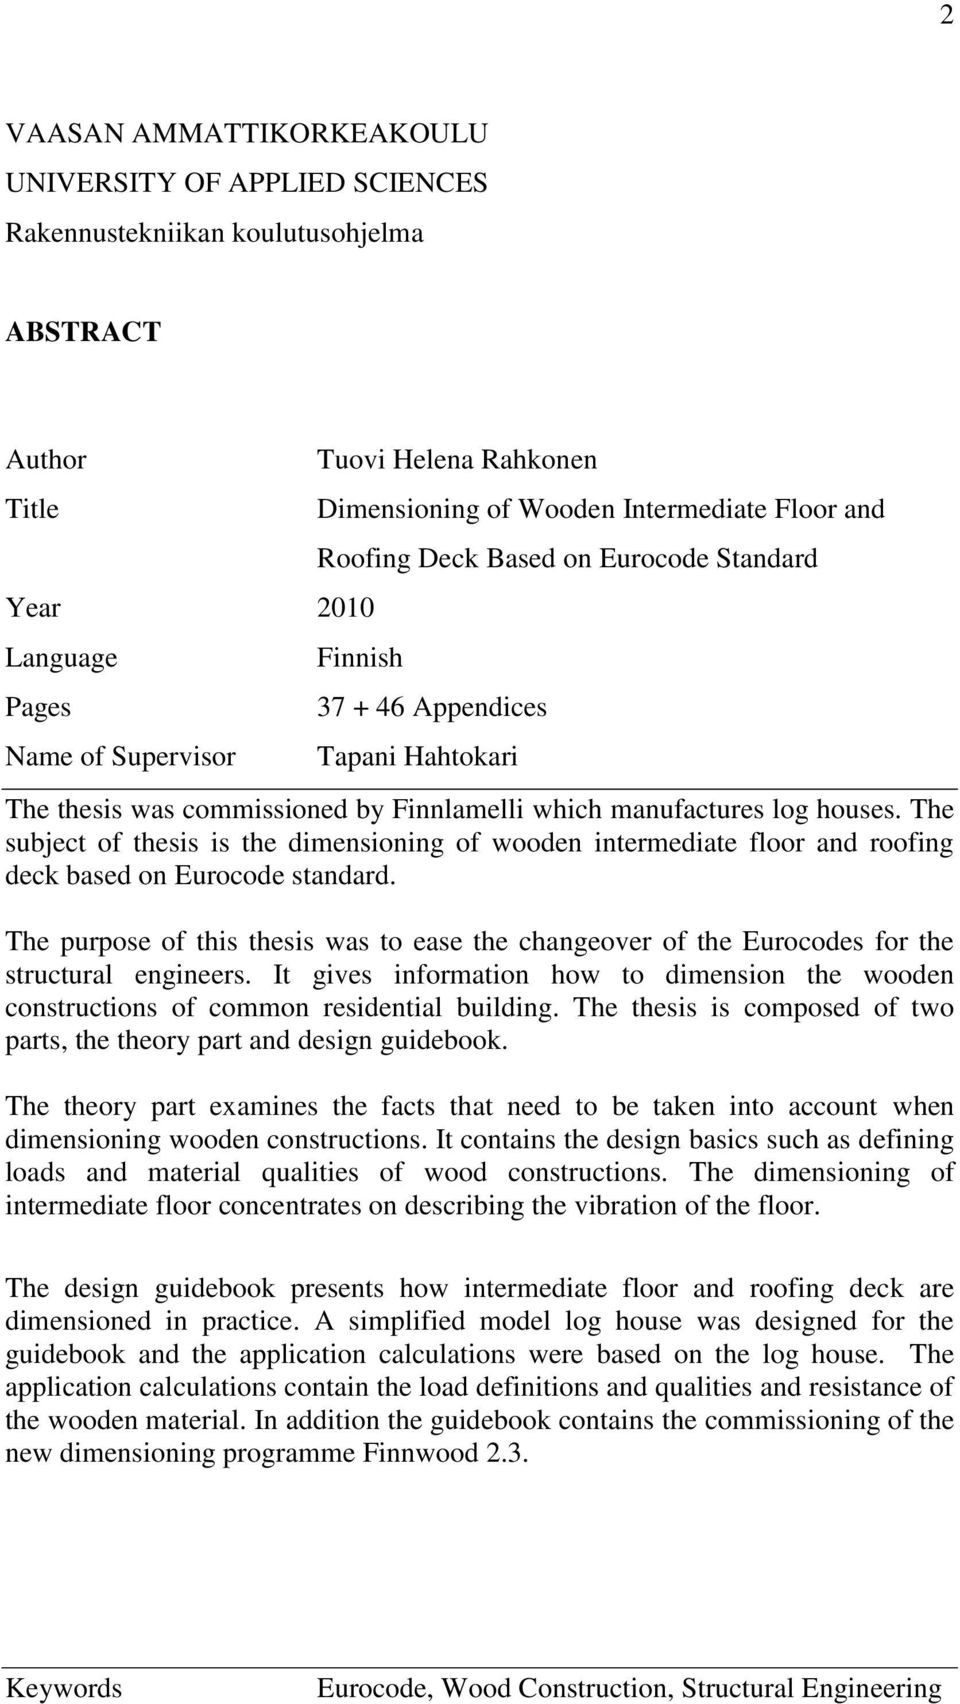 The subject of thesis is the dimensioning of wooden intermediate floor and roofing deck based on Eurocode standard.